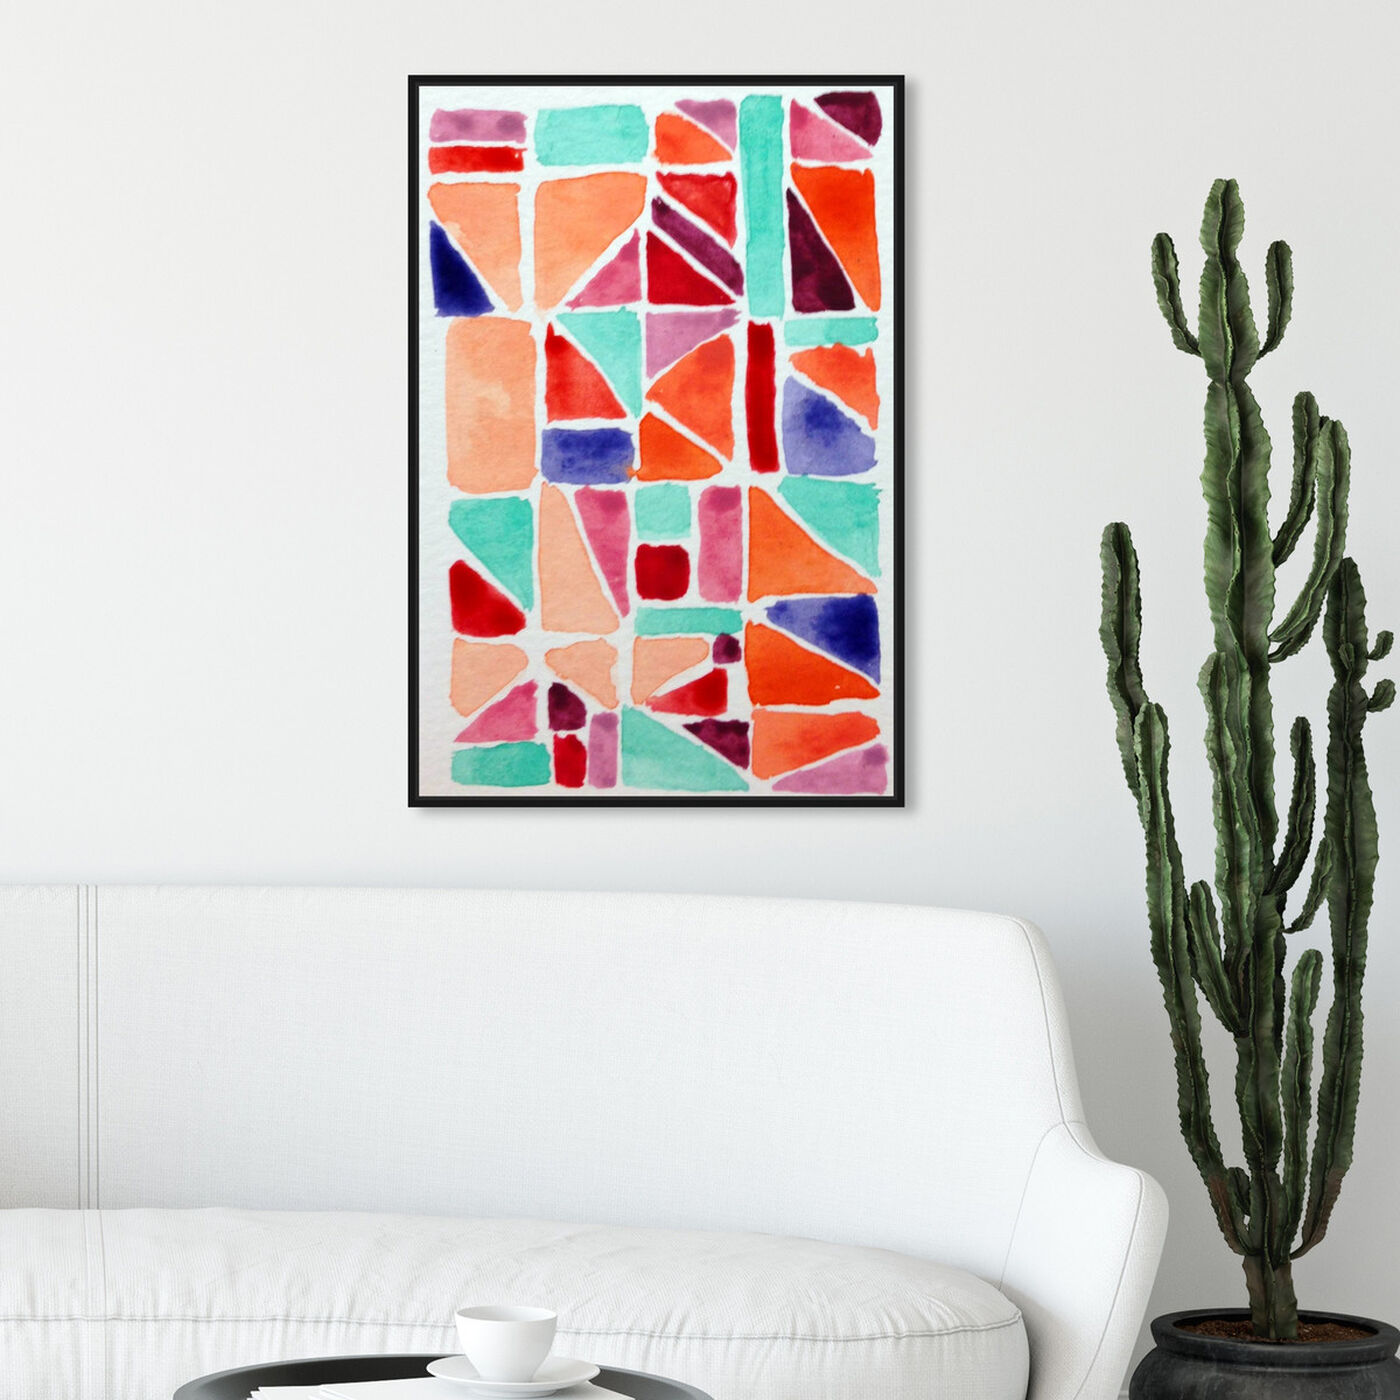 Hanging view of Small Details featuring abstract and geometric art.